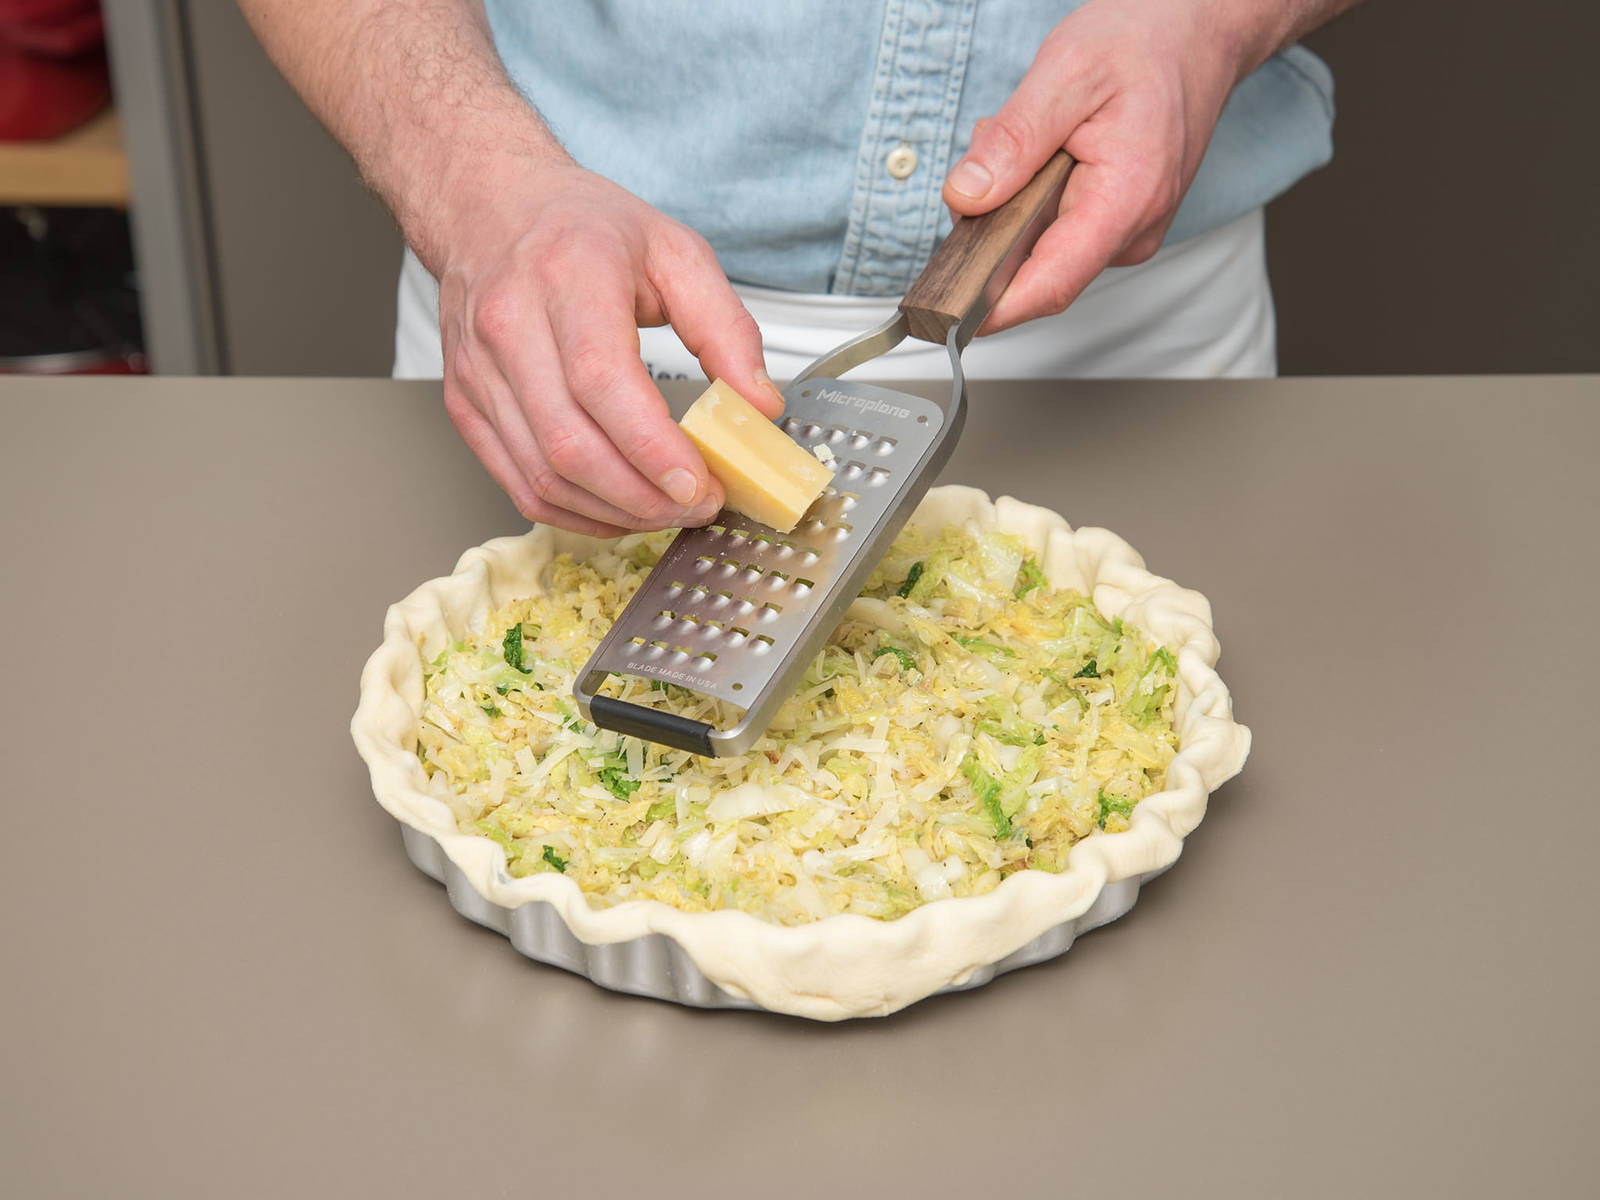 Thinly slice 2/3 of the Alpine cheese. Layer the bottom of the pan with cheese slices. Spread the cabbage over the dough so that it forms a small mound in the middle. Grate the rest of the cheese onto the cabbage.